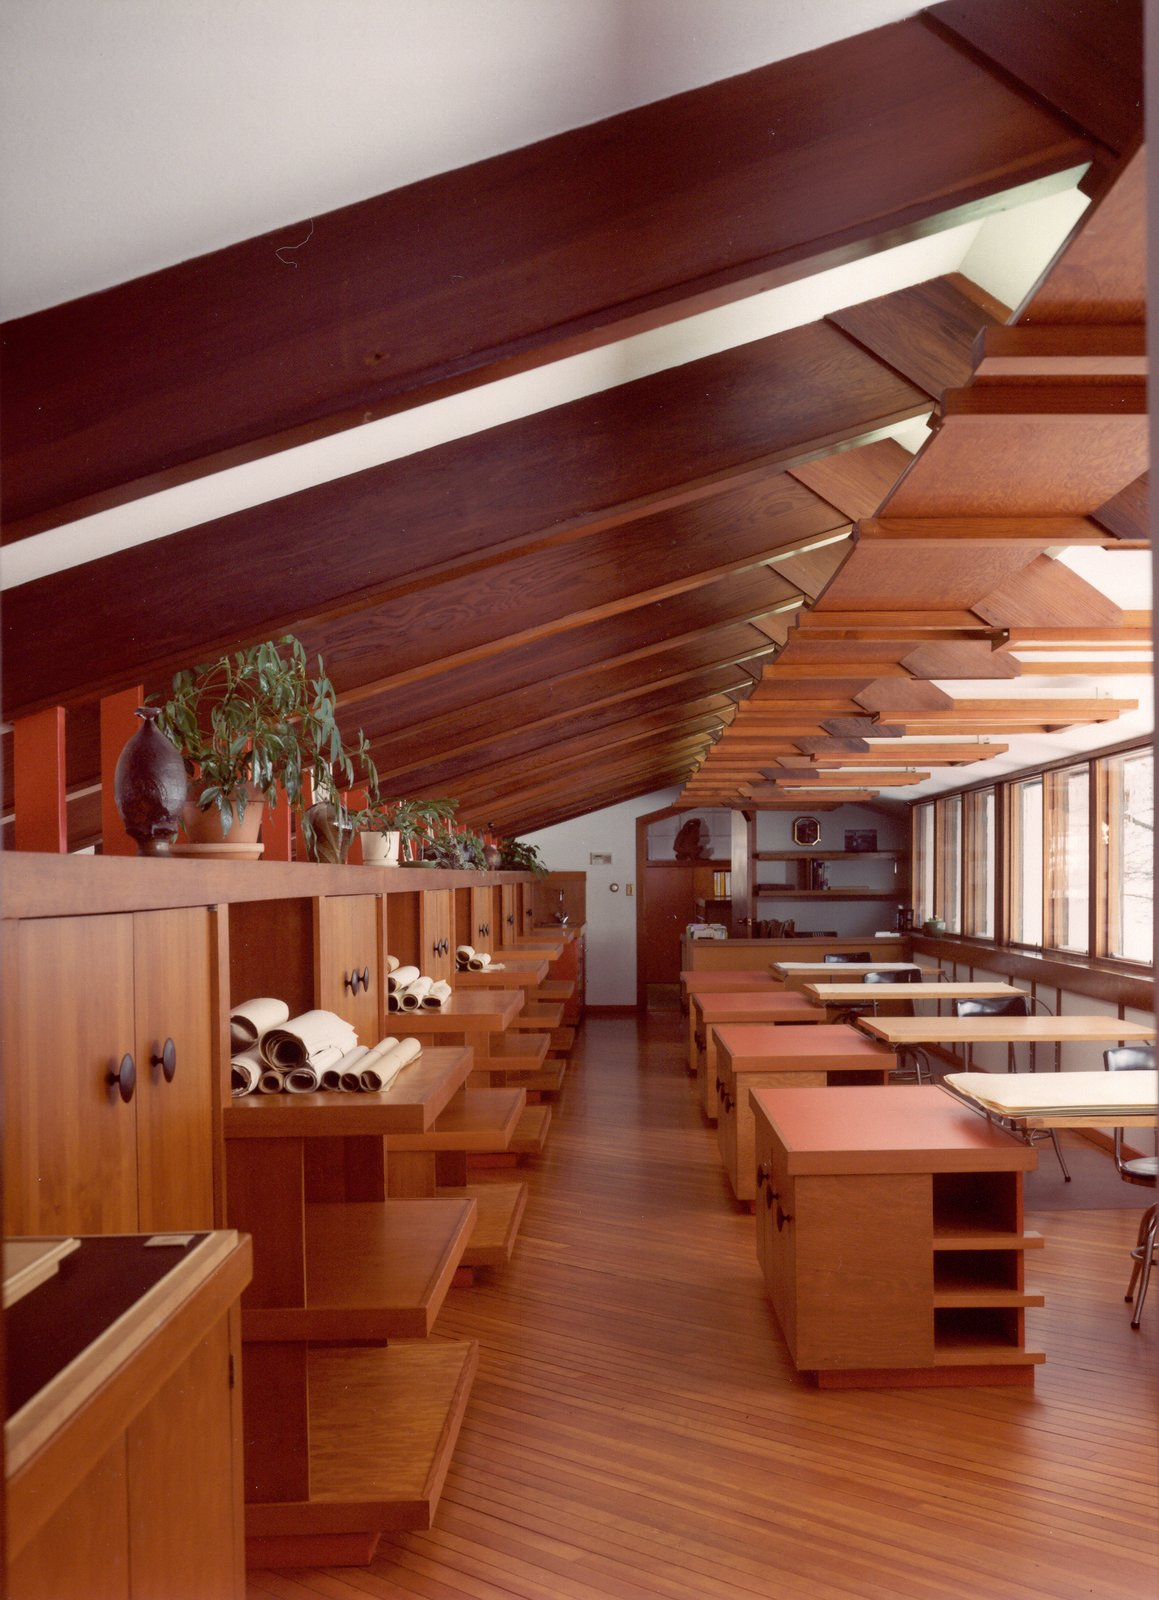 In the first drafting room, a row of windows on the northern facade provides illumination for the drafting tables below. The chairs are original, while the desks are reproductions of the flat tabletops that allowed Dow to offer suggestions as he walked down the aisle.  Photo 4 of 8 in Alden B. Dow: The Mastermind of Midwestern Modernism